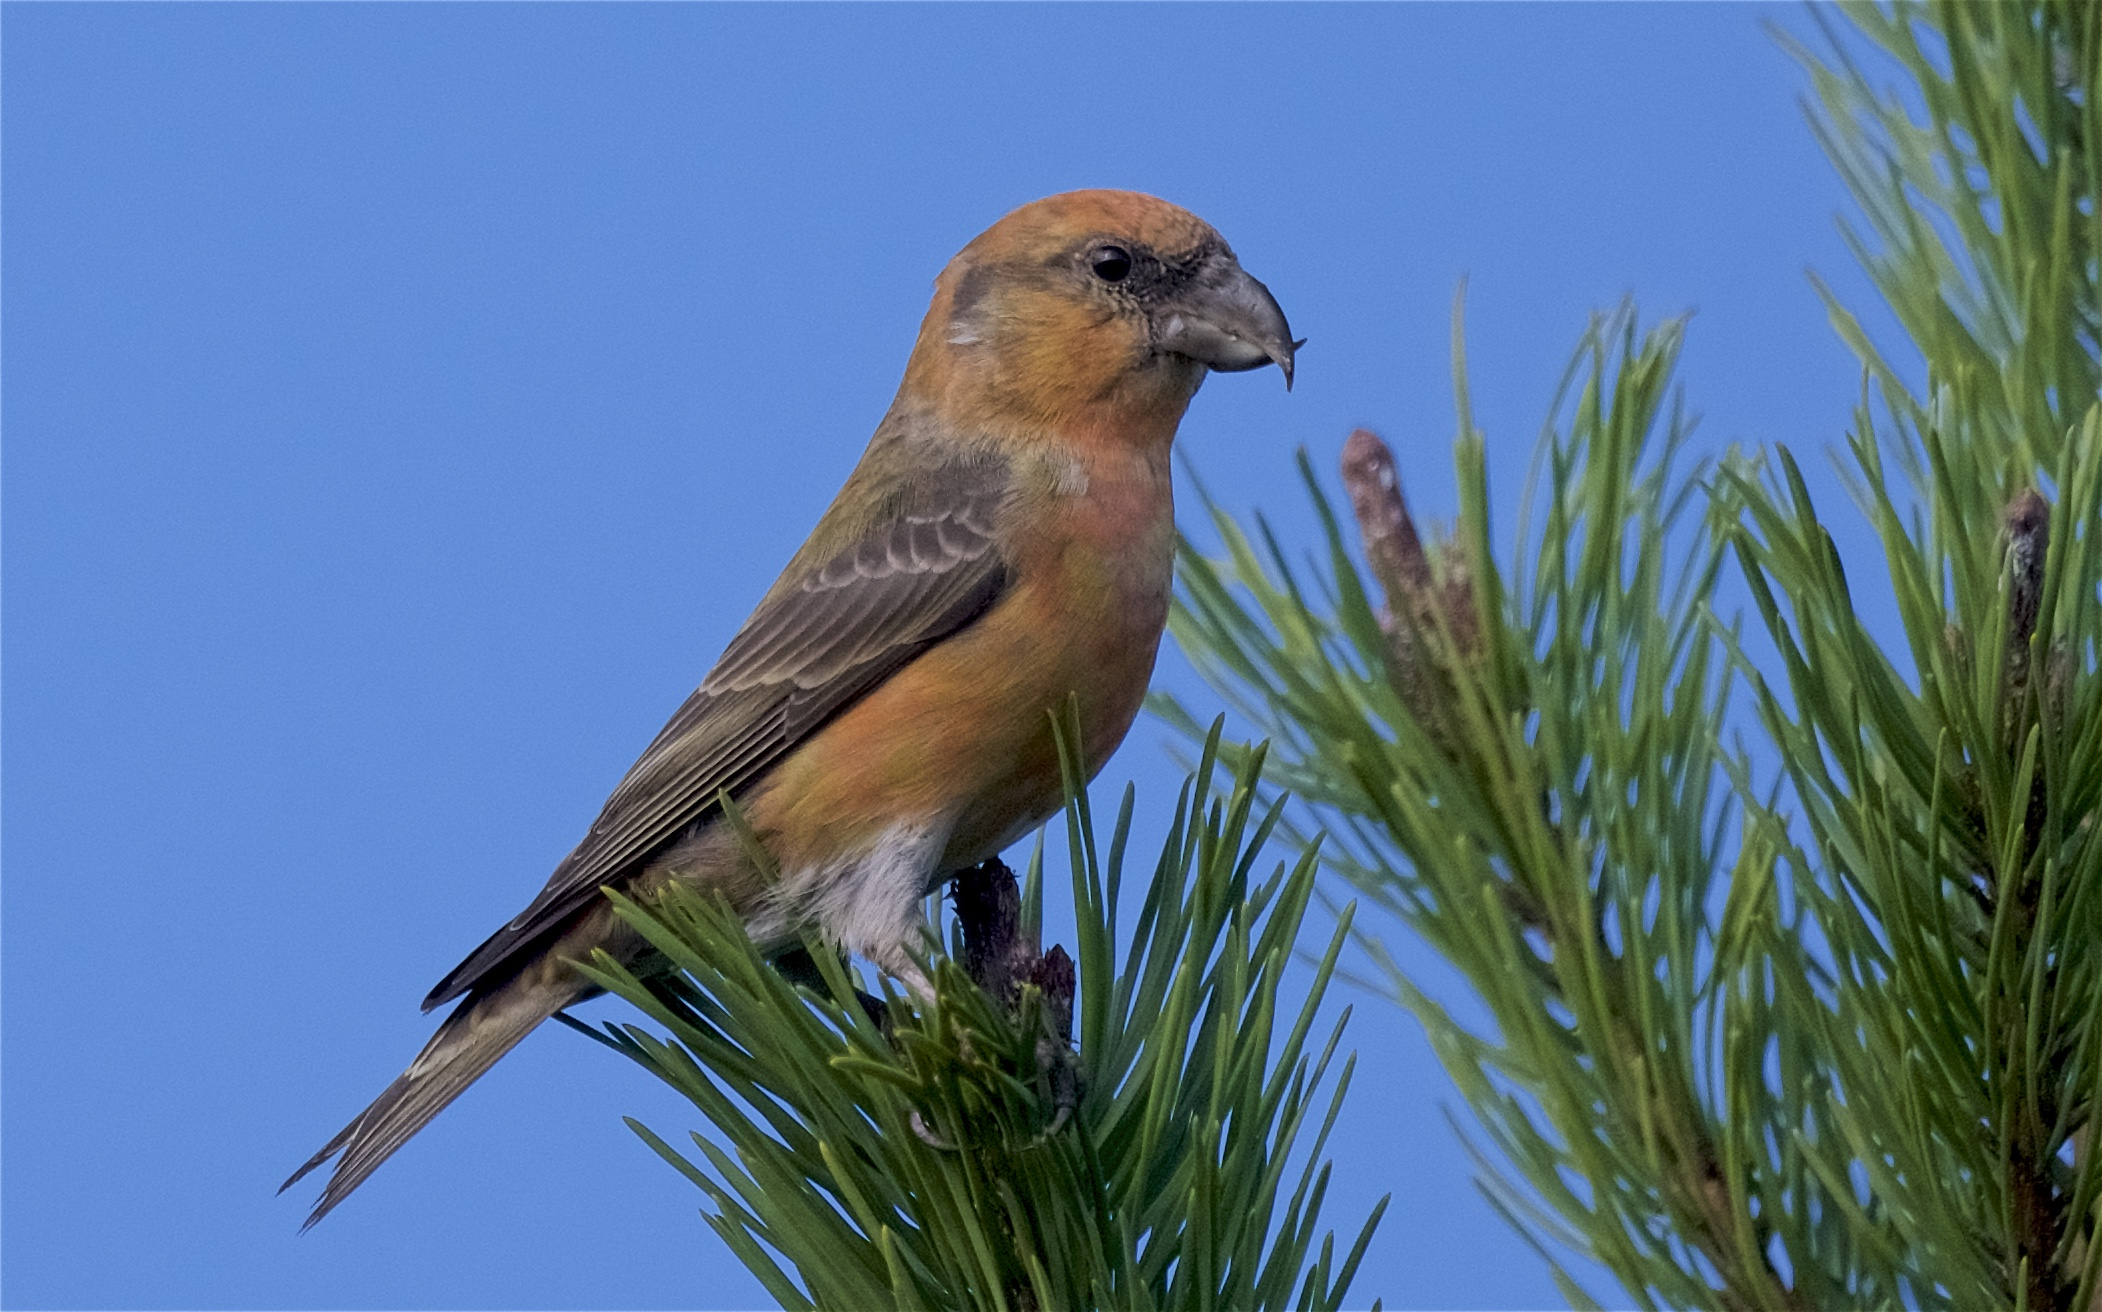 Common Crossbill 29 Oct 2017 (Peter Christian)